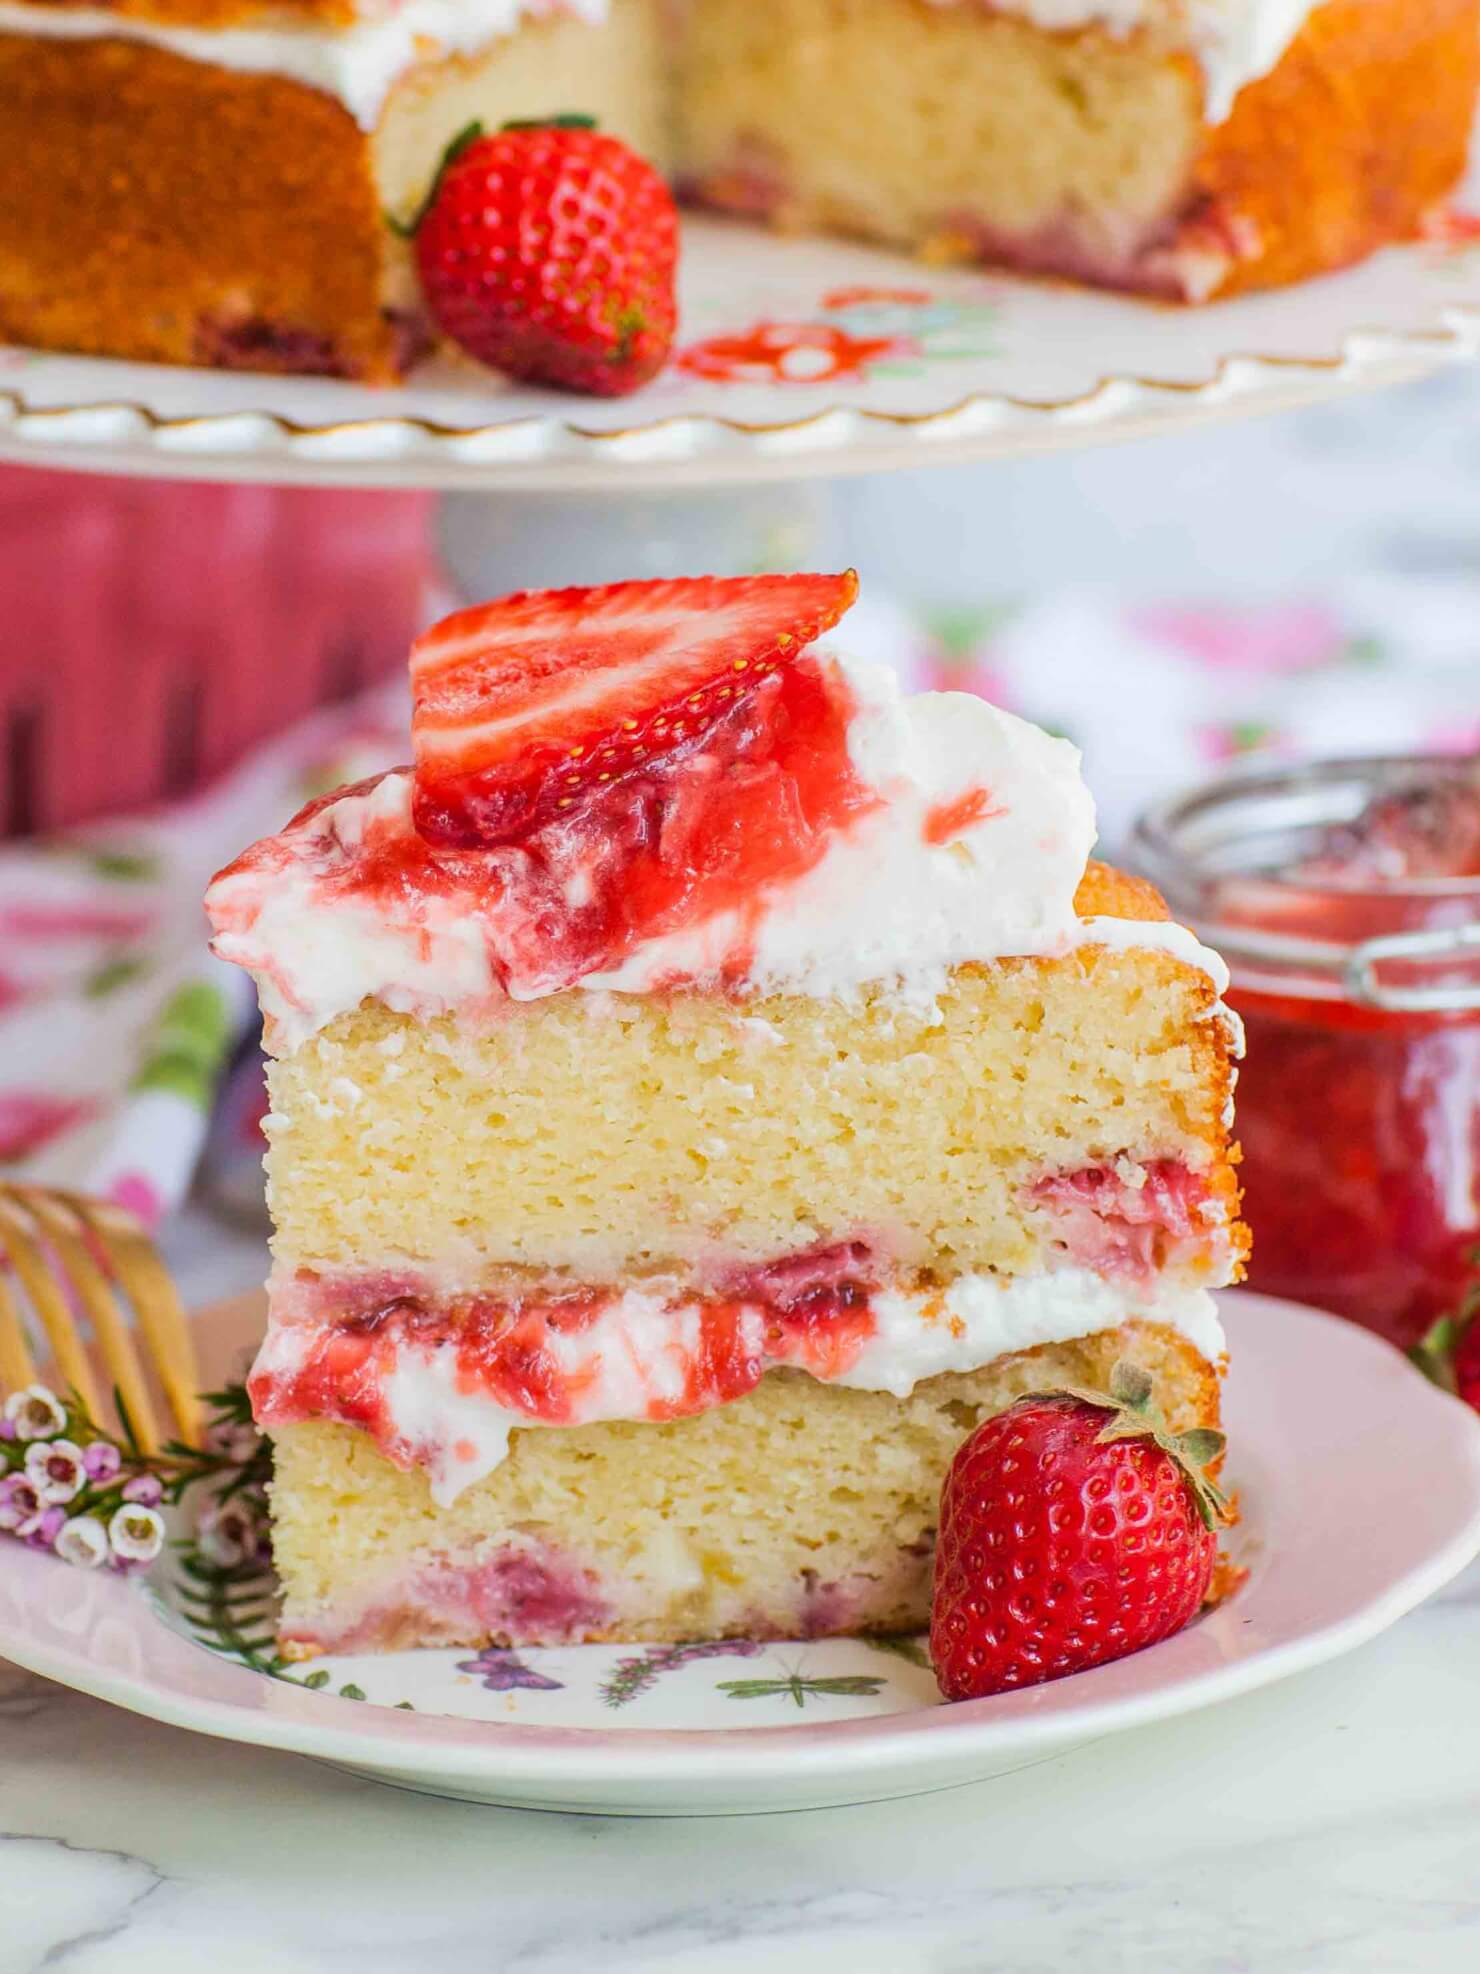 strawberry cake slice with whipped cream